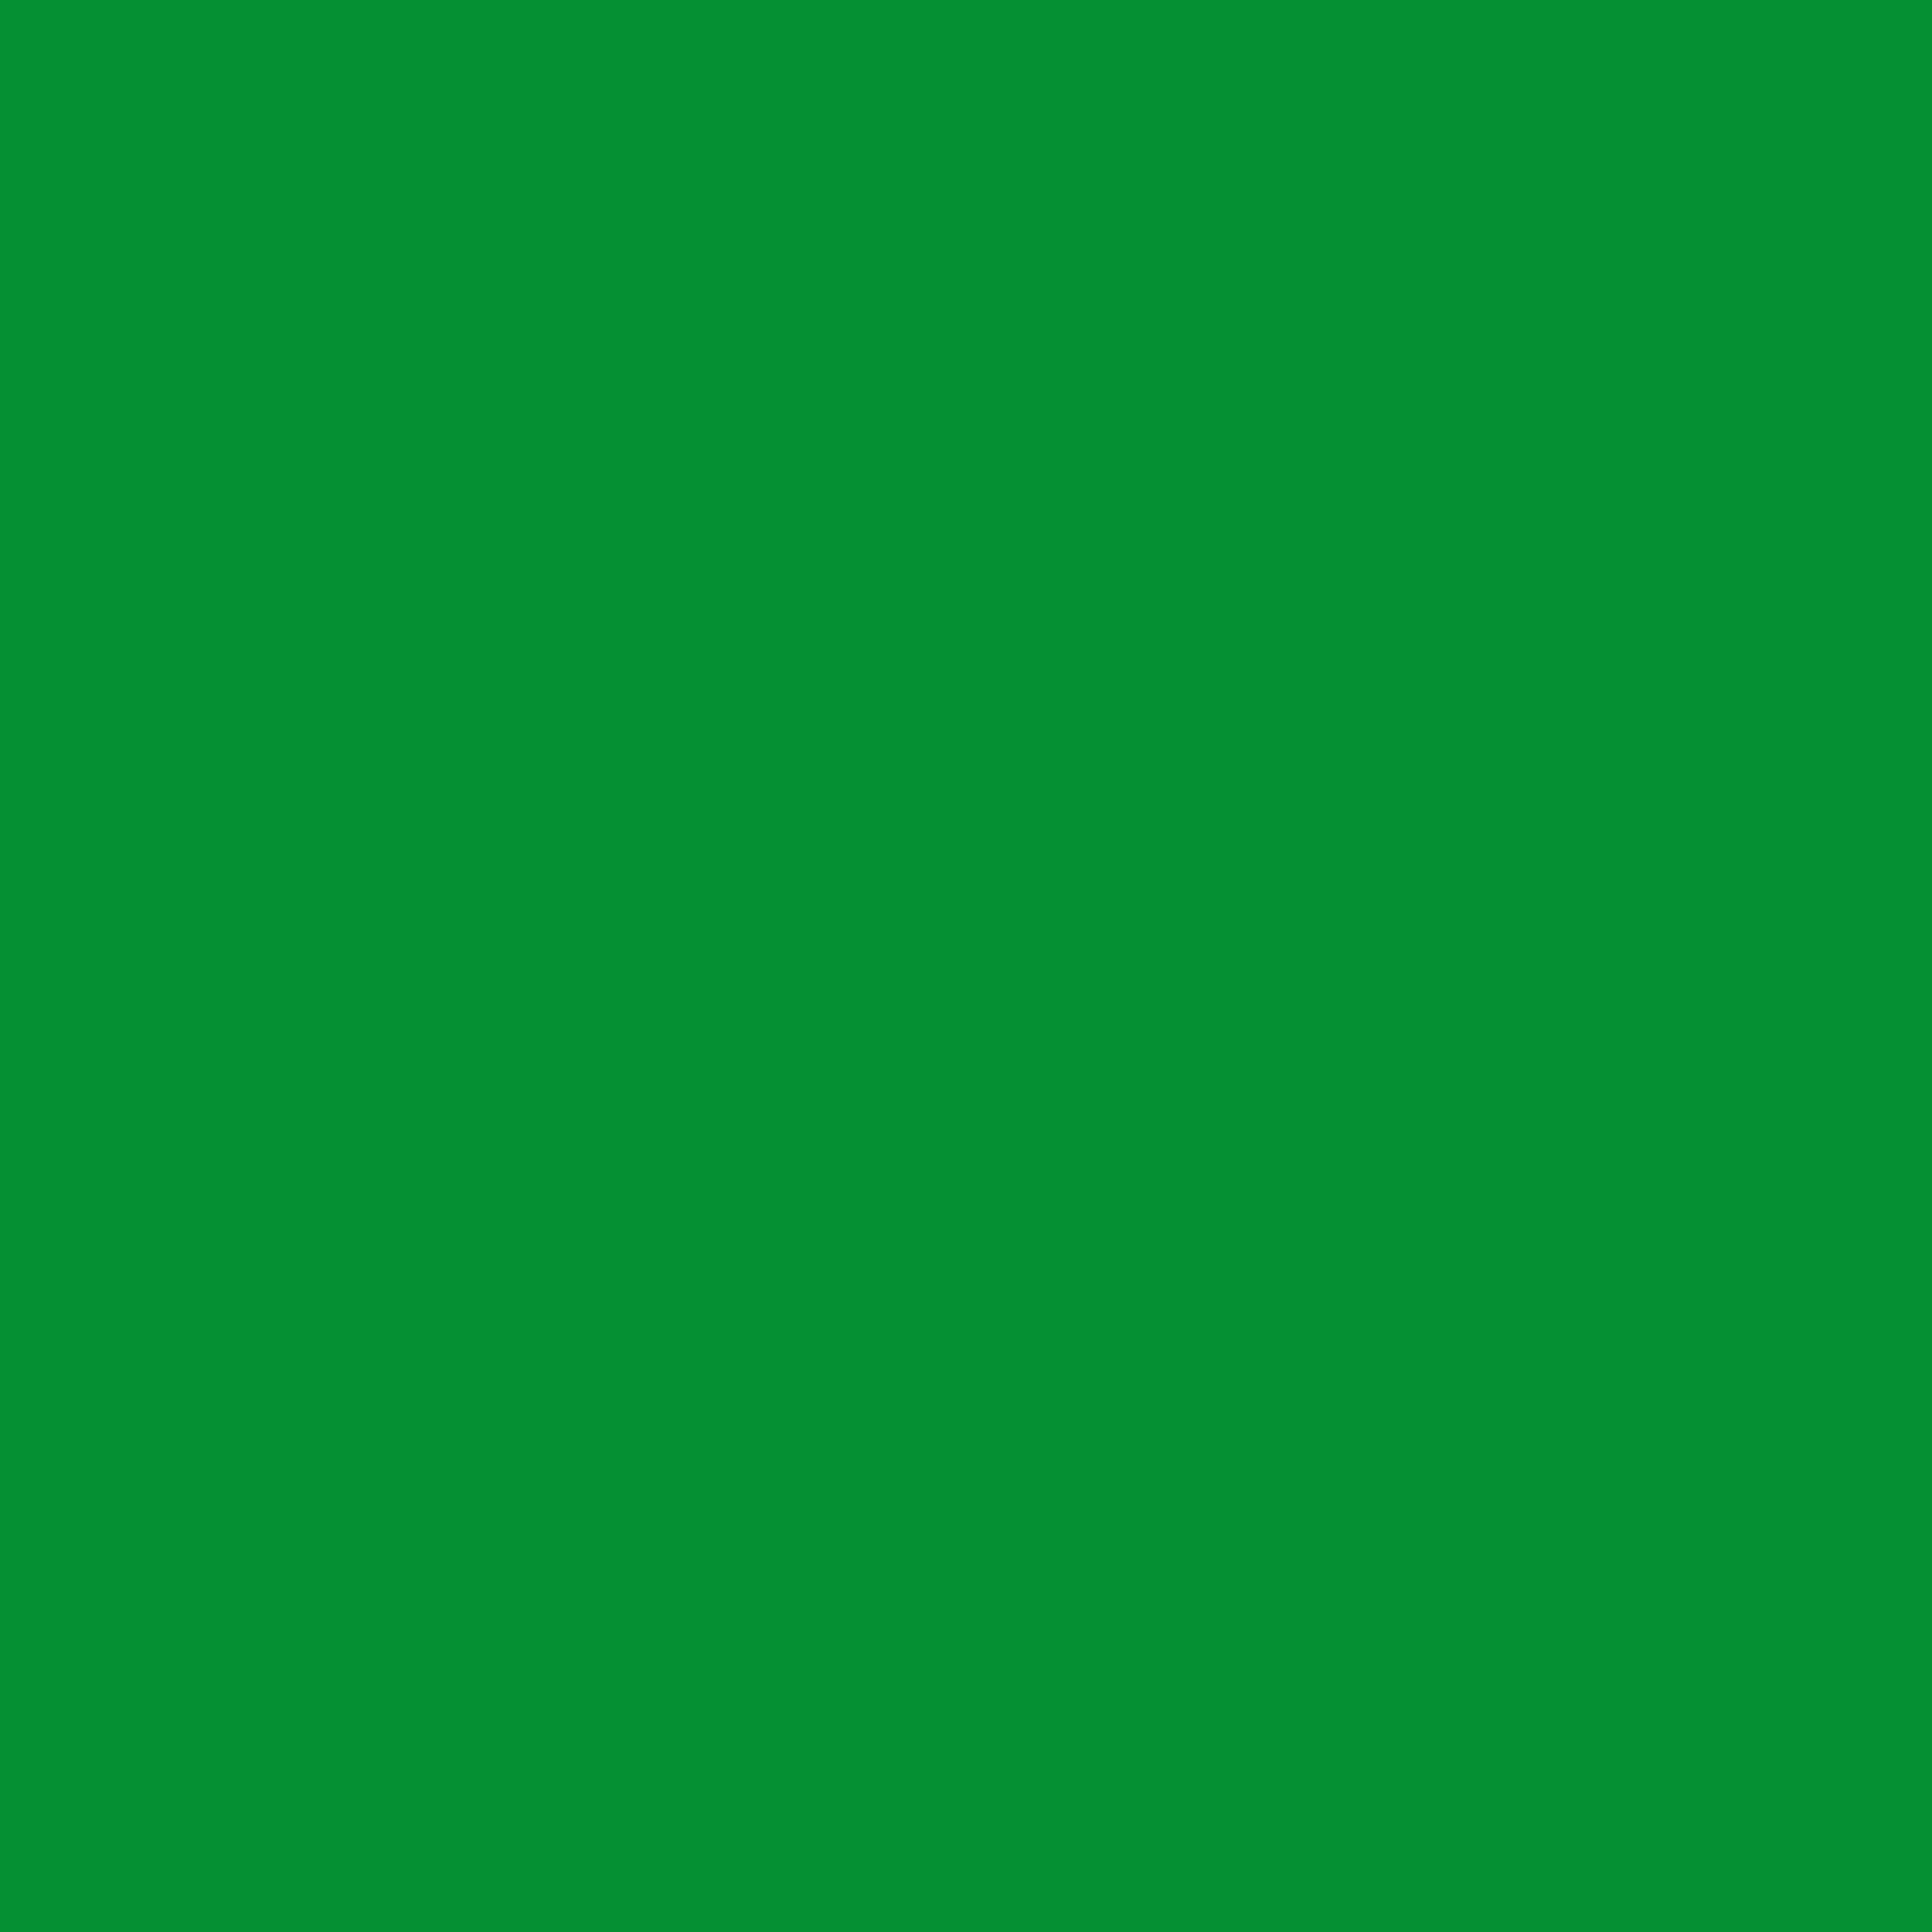 3600x3600 North Texas Green Solid Color Background